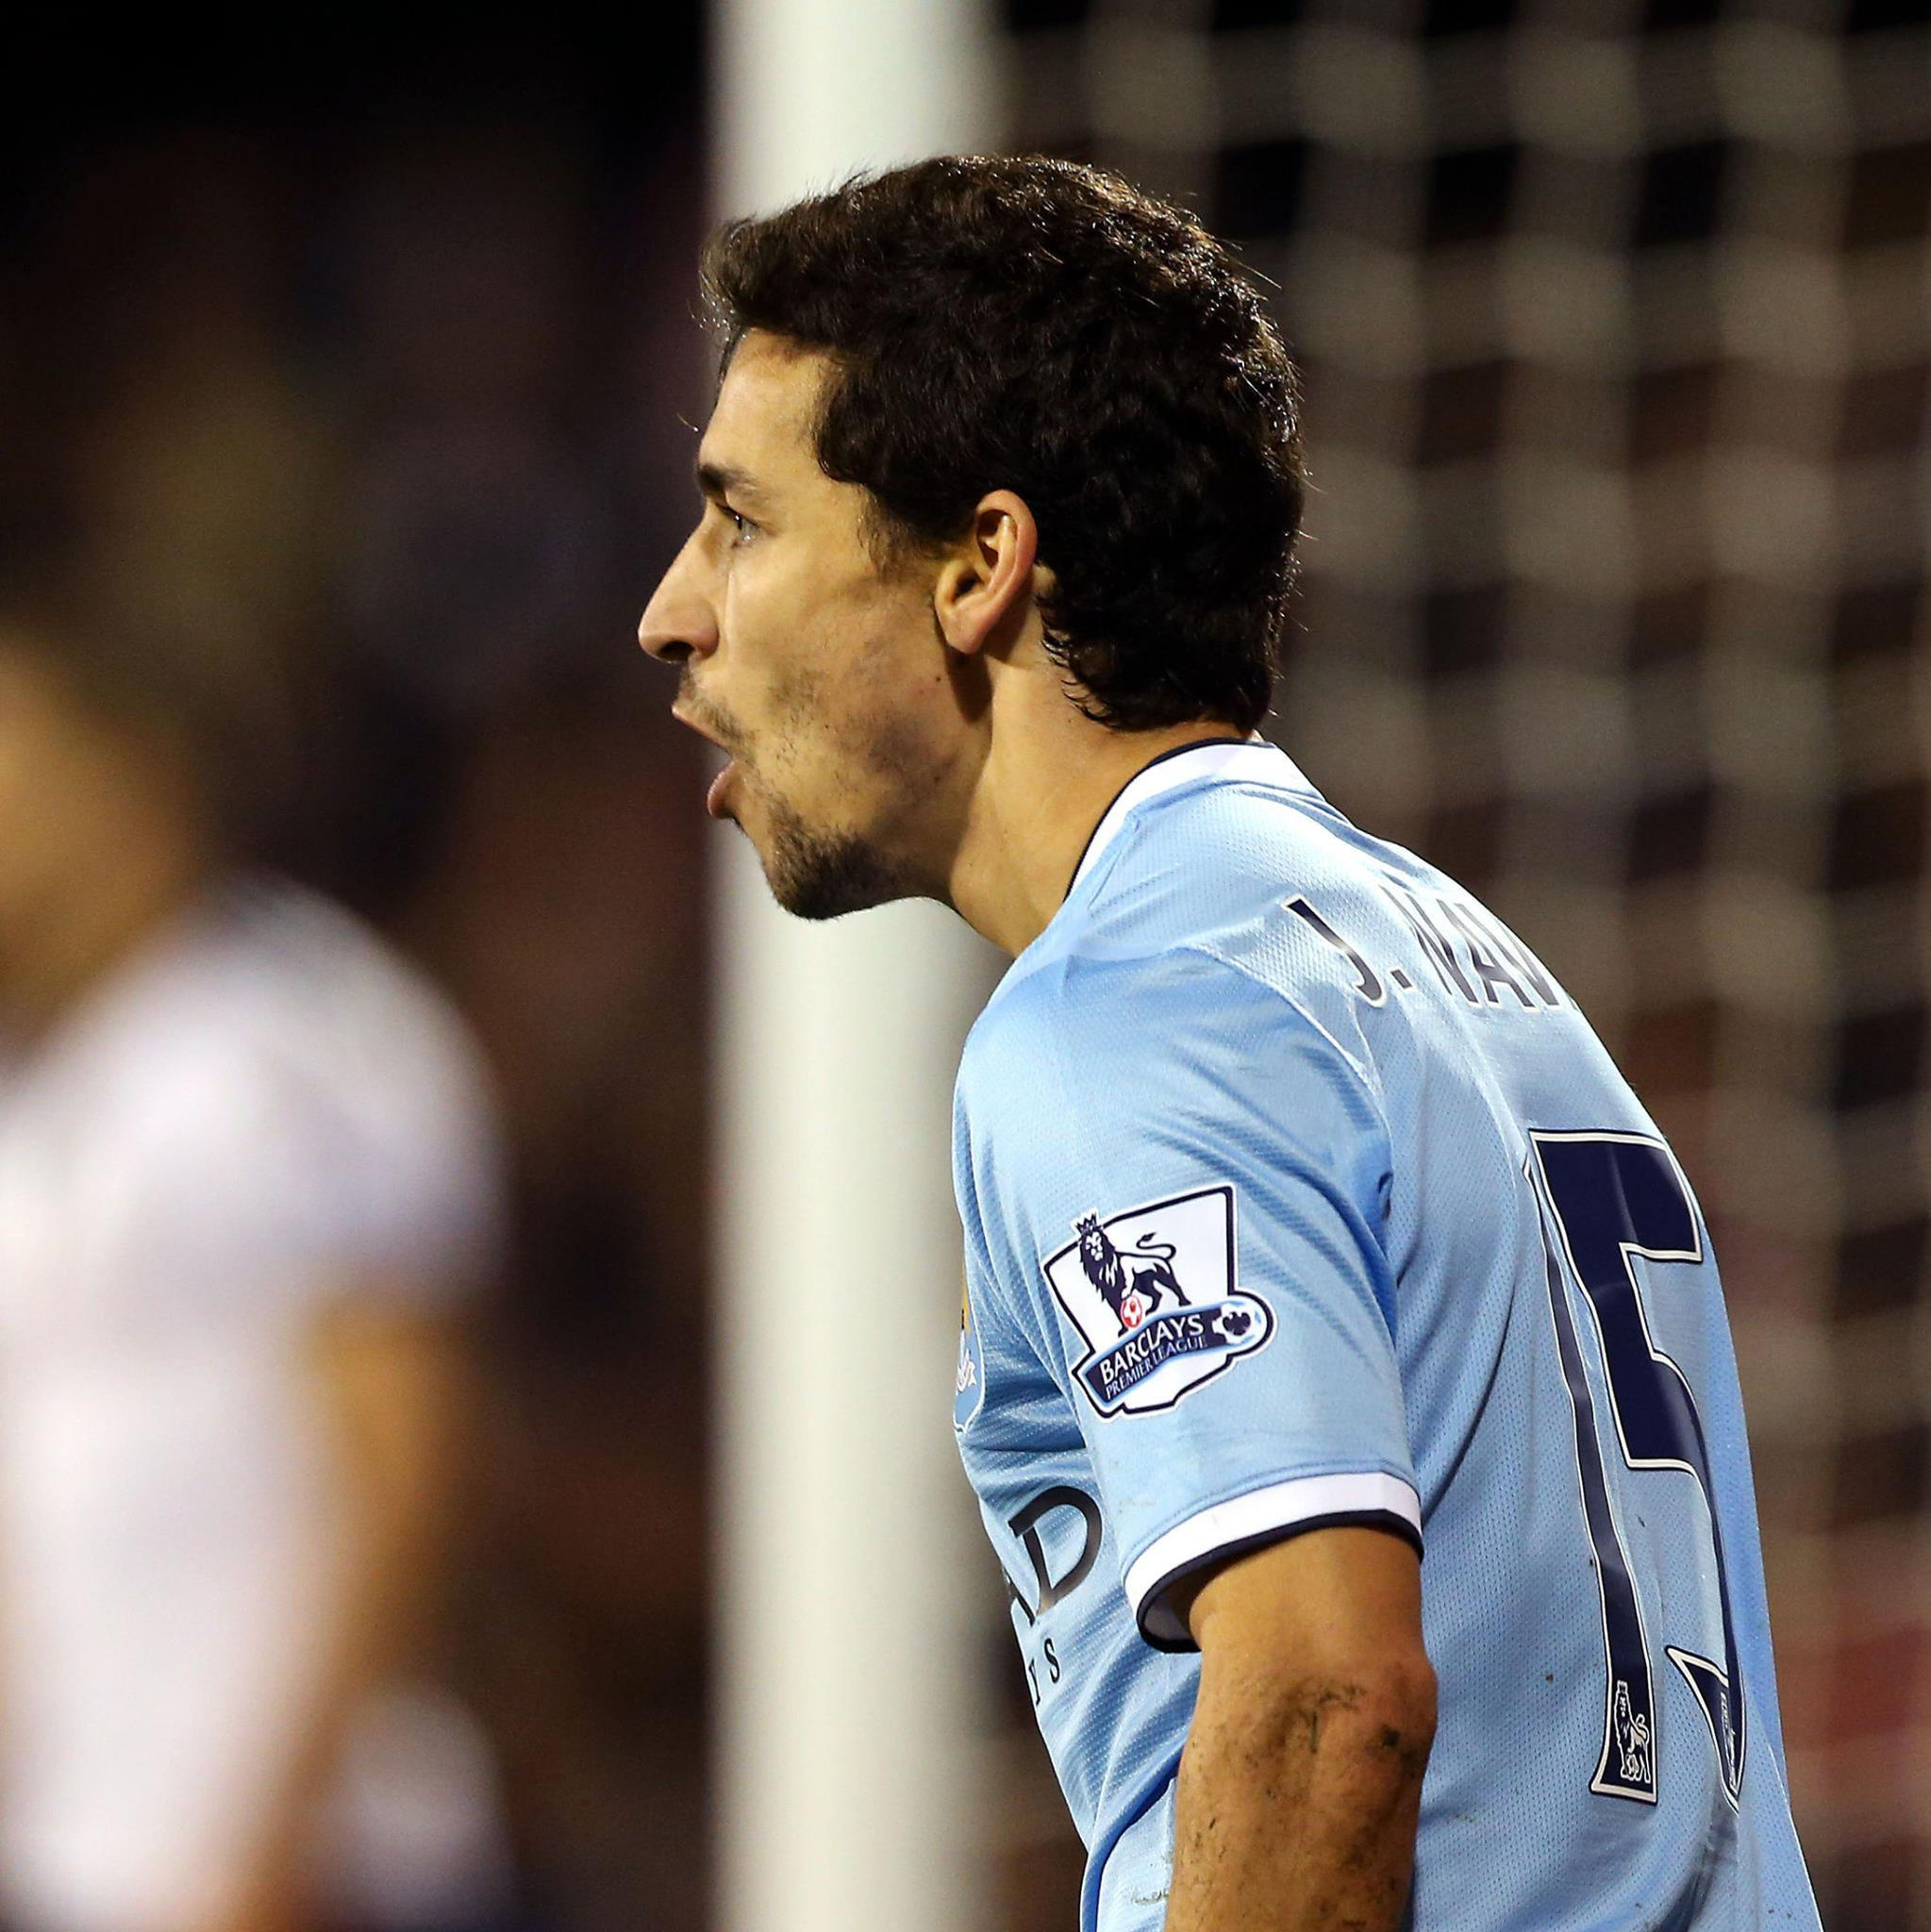 City savour - Jesus Navas saved Christmas for the men from Manchester - nudging them to victory Courtesy @MCFC